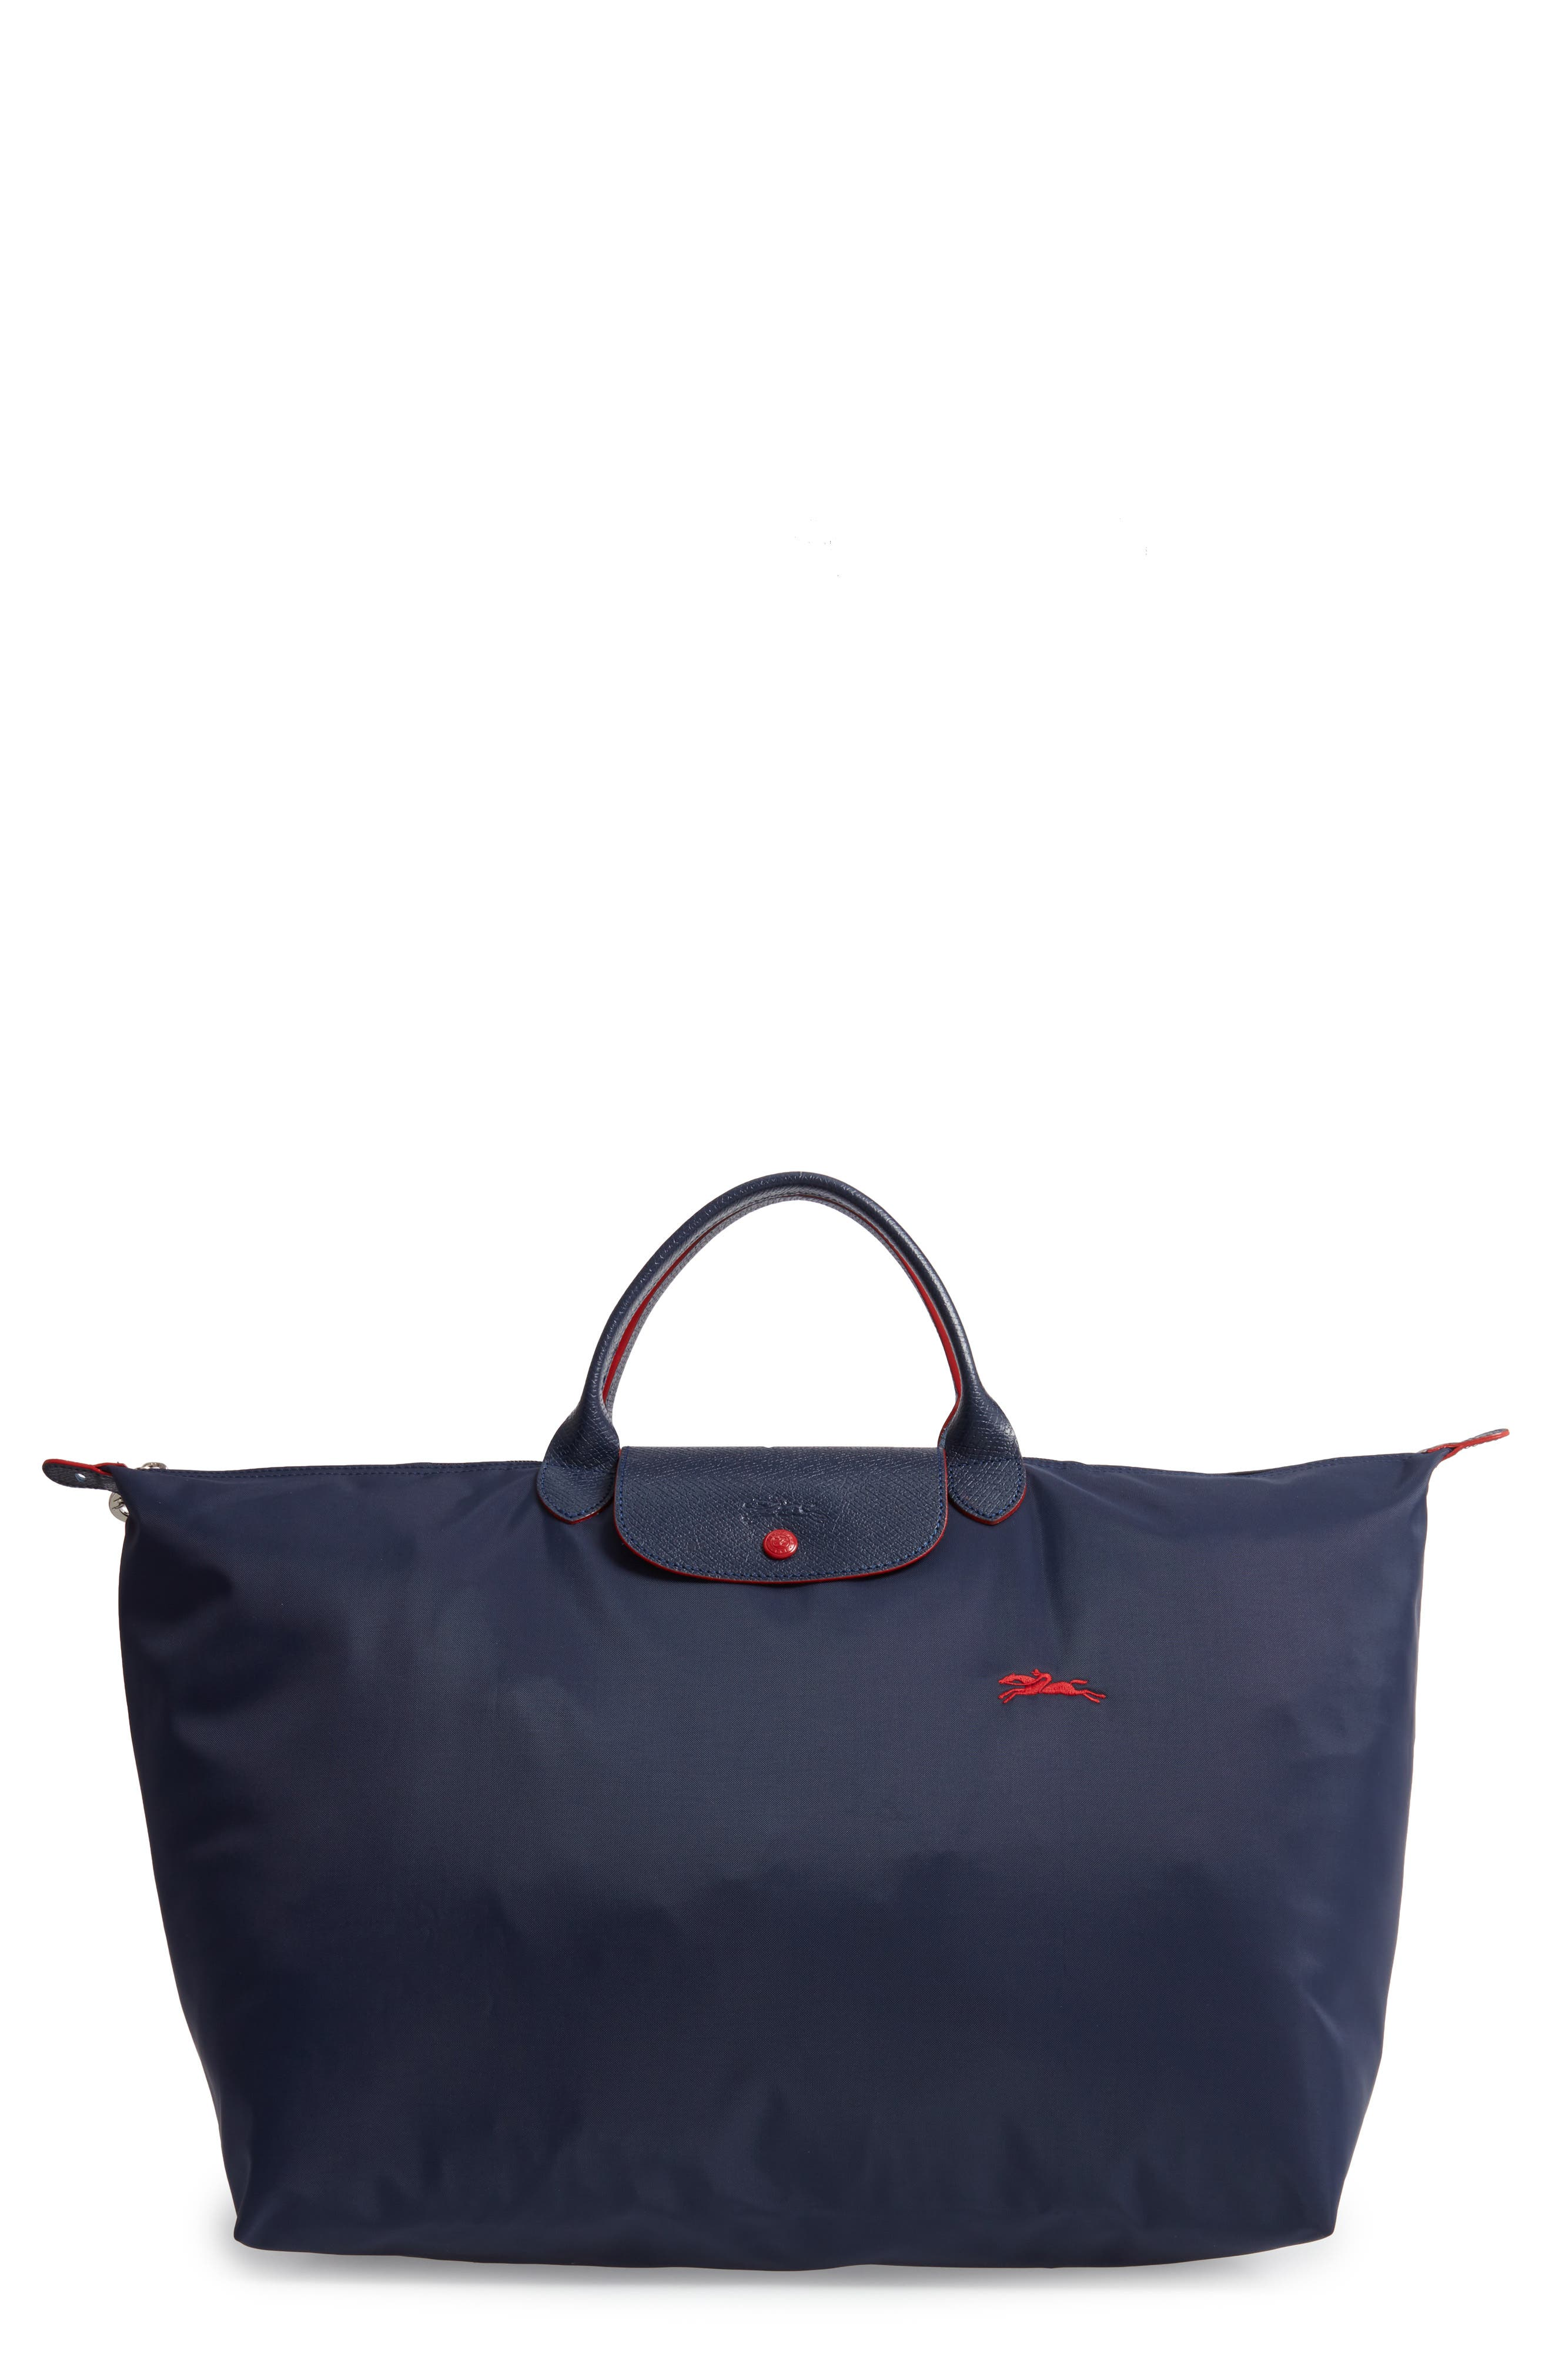 Le Pliage Club Large Nylon Canvas Travel Bag in New Navy